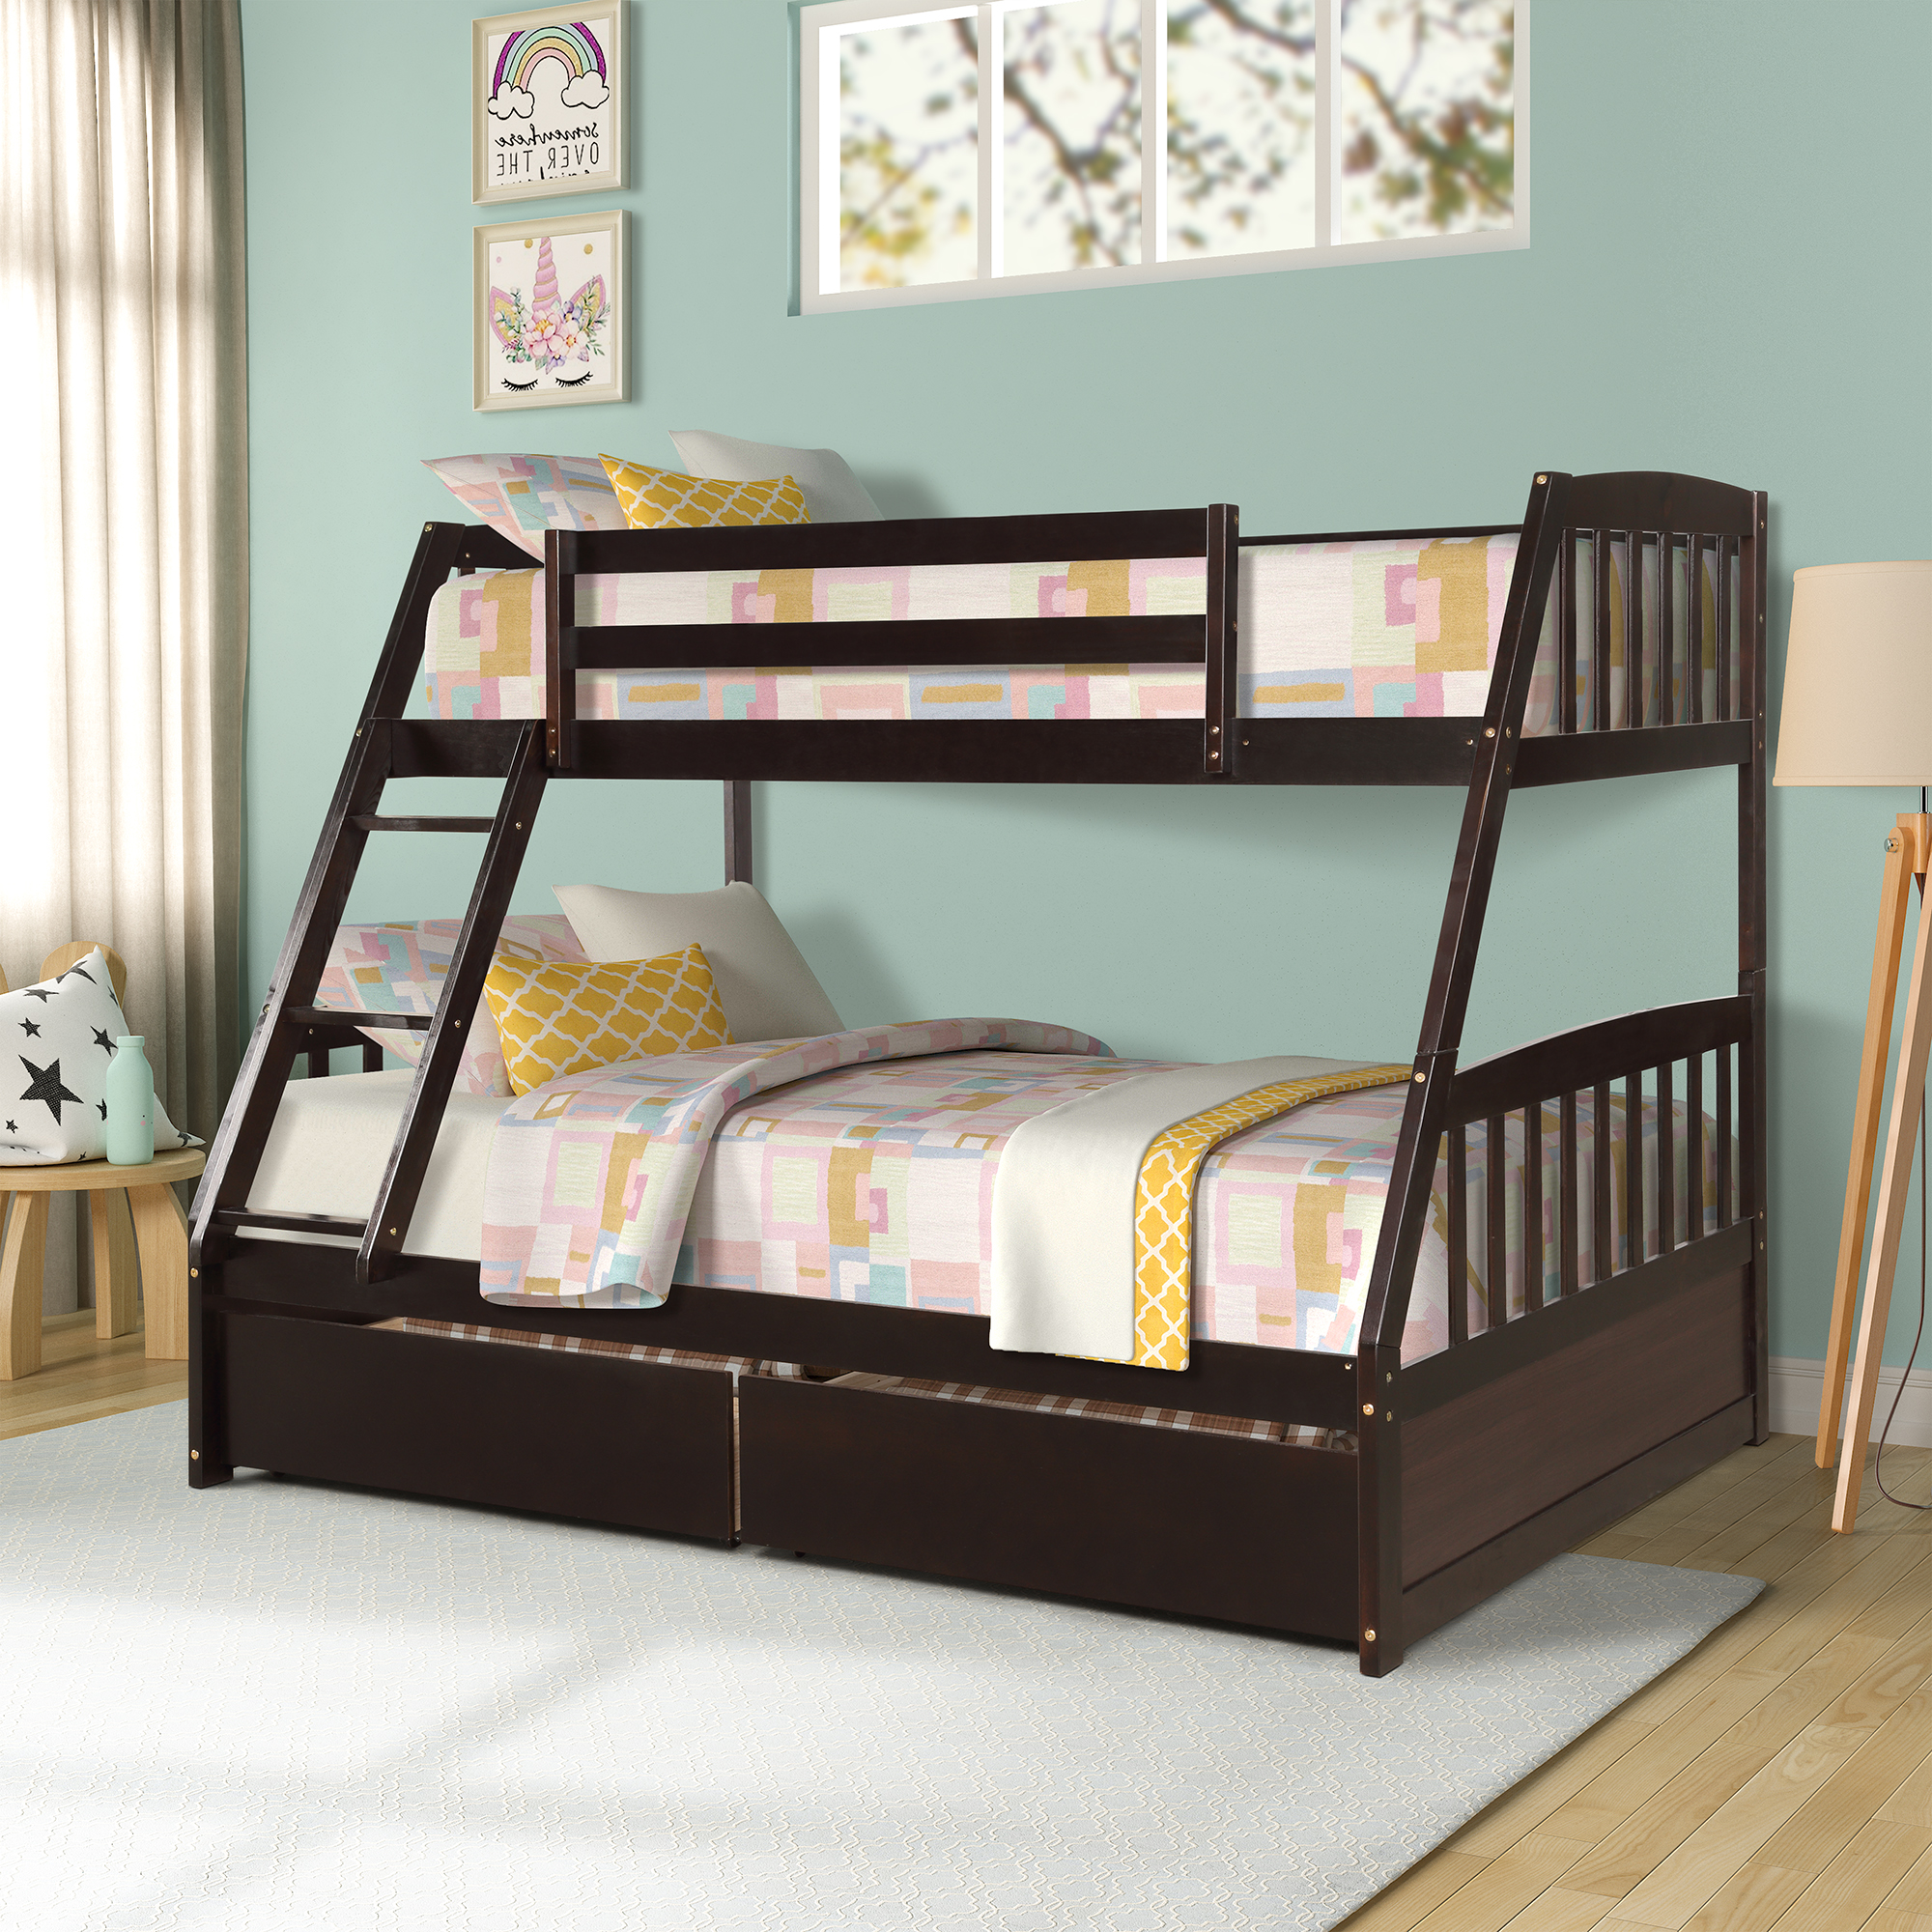 Bedroom Furniture Bed Solid Wood Twin Over Full Bunk Bed With Two Storage Drawers White For Adults Child Bed Factory Price Sales